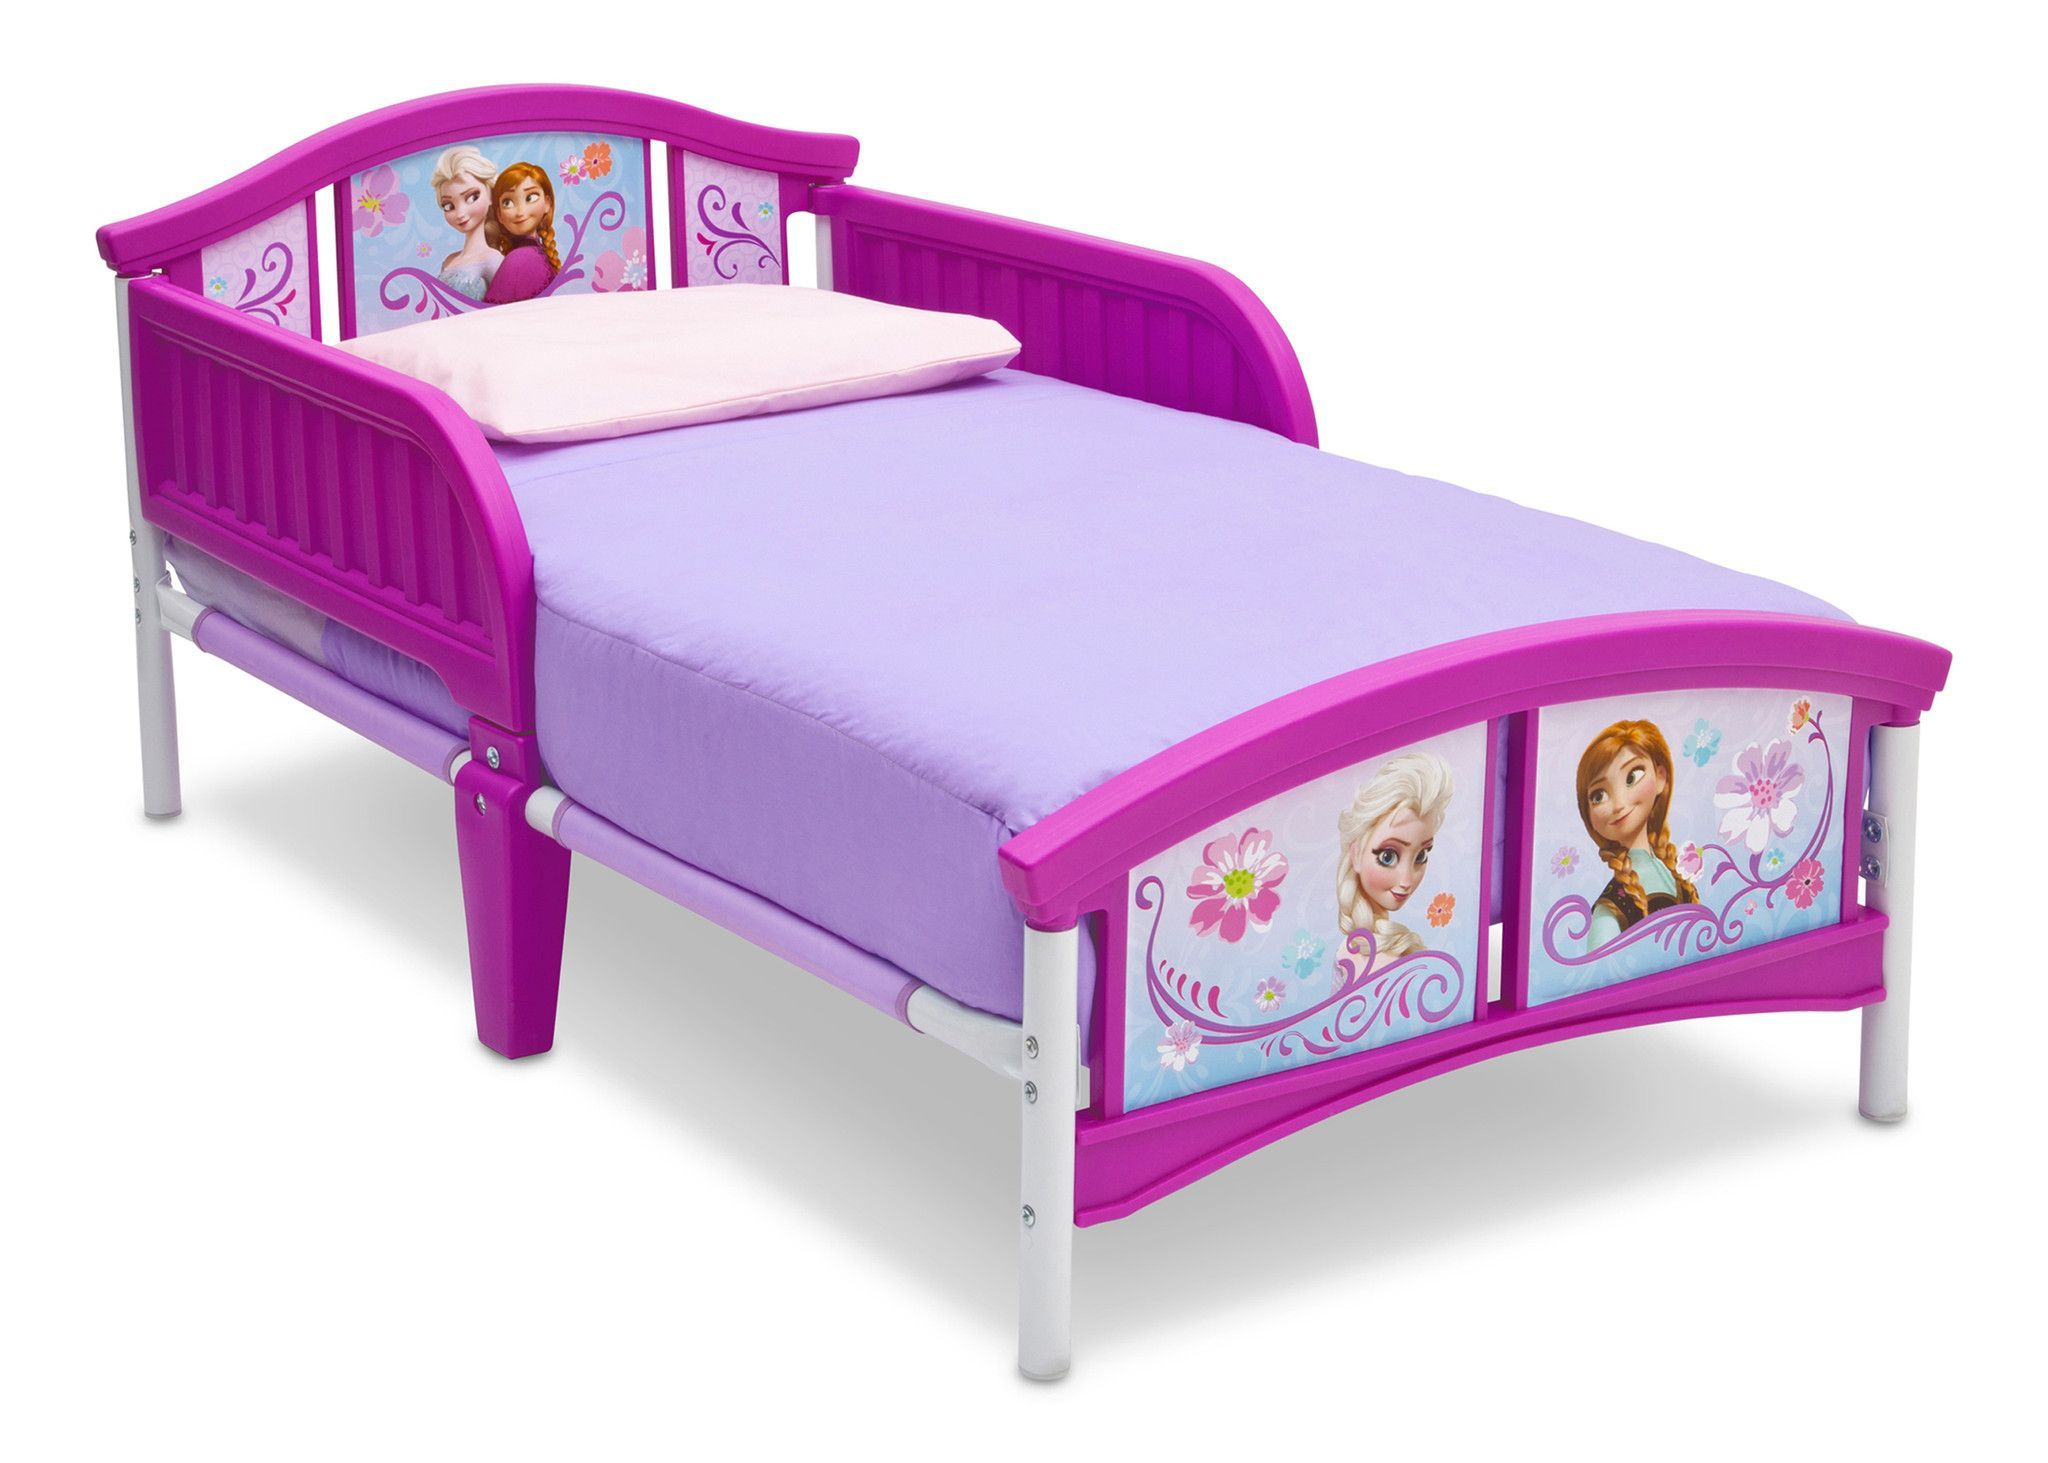 Frozen Plastic Toddler Bed Convertible Toddler Bed Toddler Bed